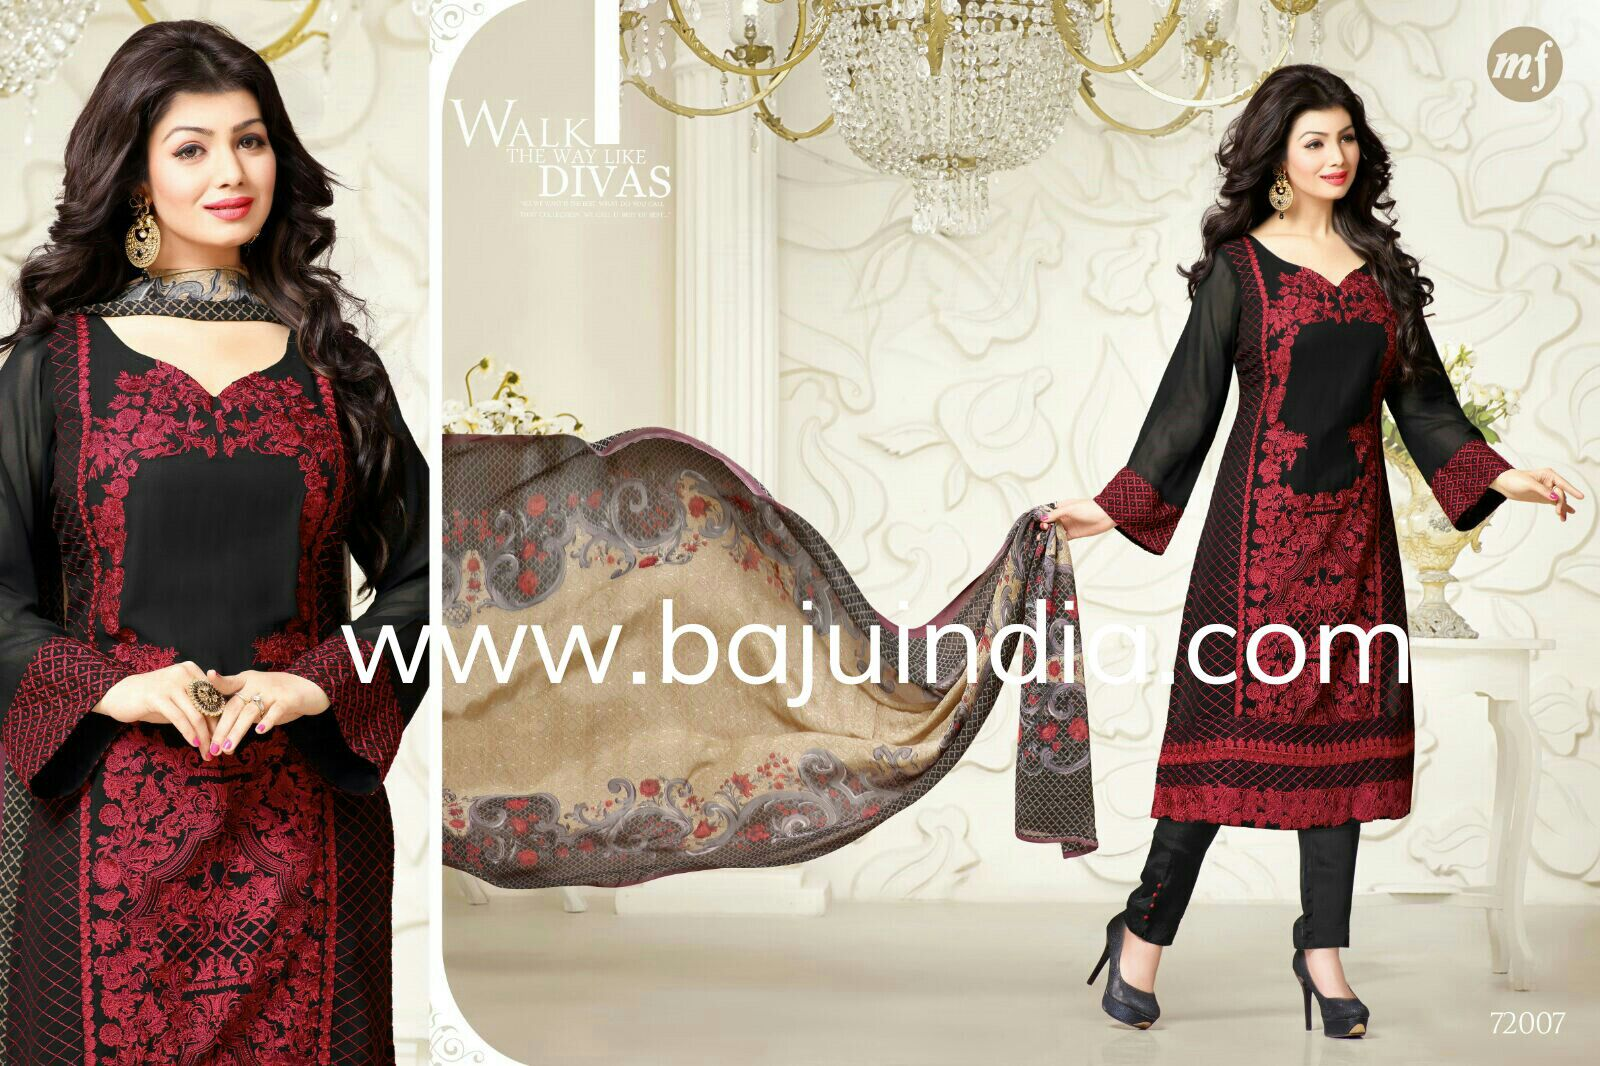 Baju India Muslim - Baju India Modern - Baju Khas India - Baju Adat India - Sari India Terbaru - Sari India Muslim - Baju Kerajaan India - Baju Salwaar India - mf 72007